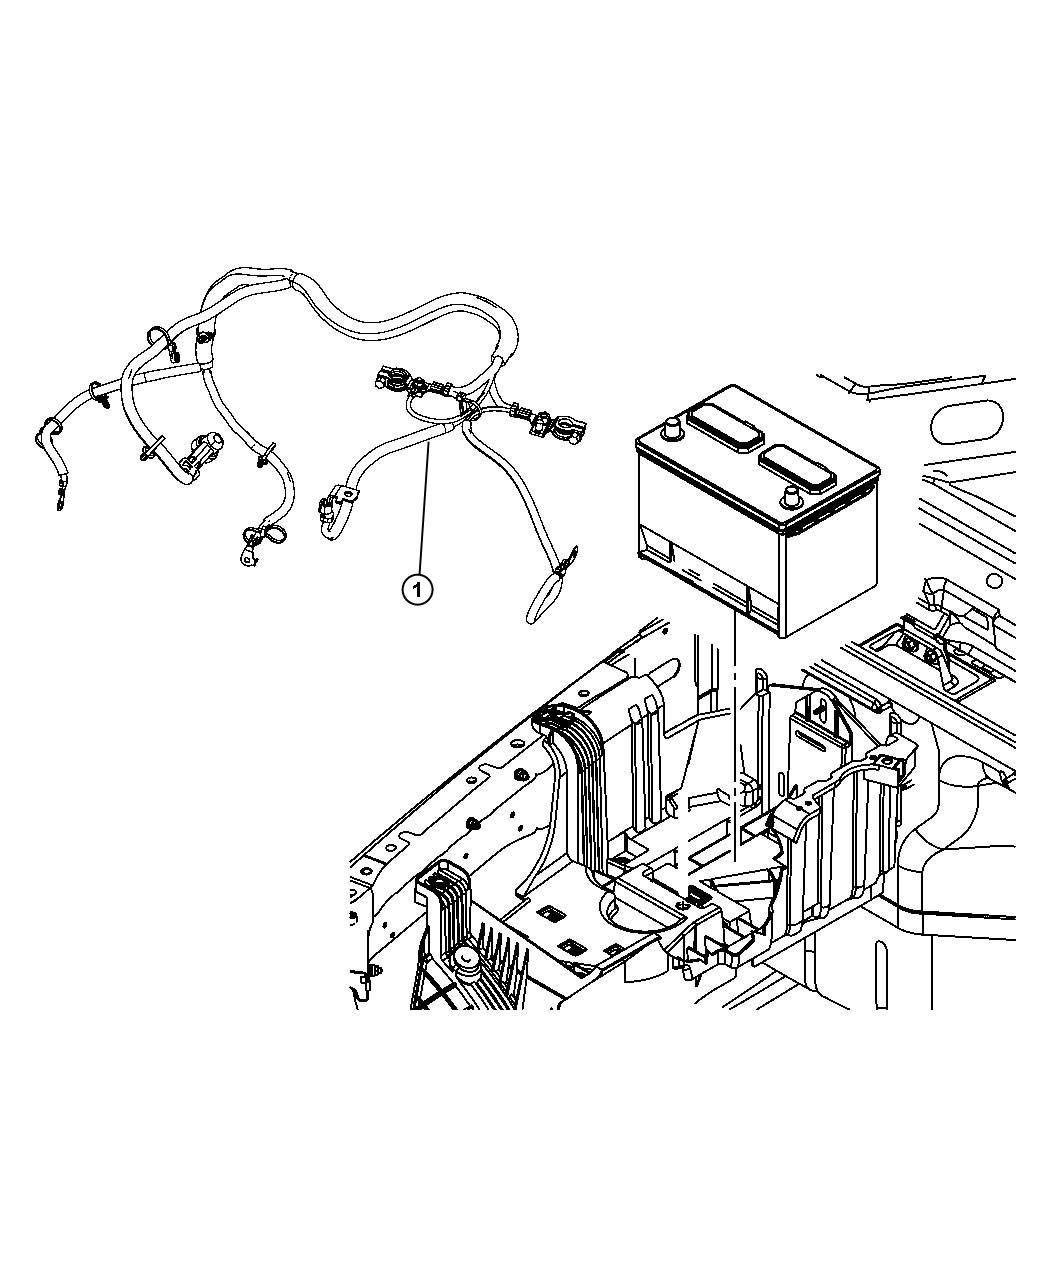 Jeep Wrangler Wiring Battery